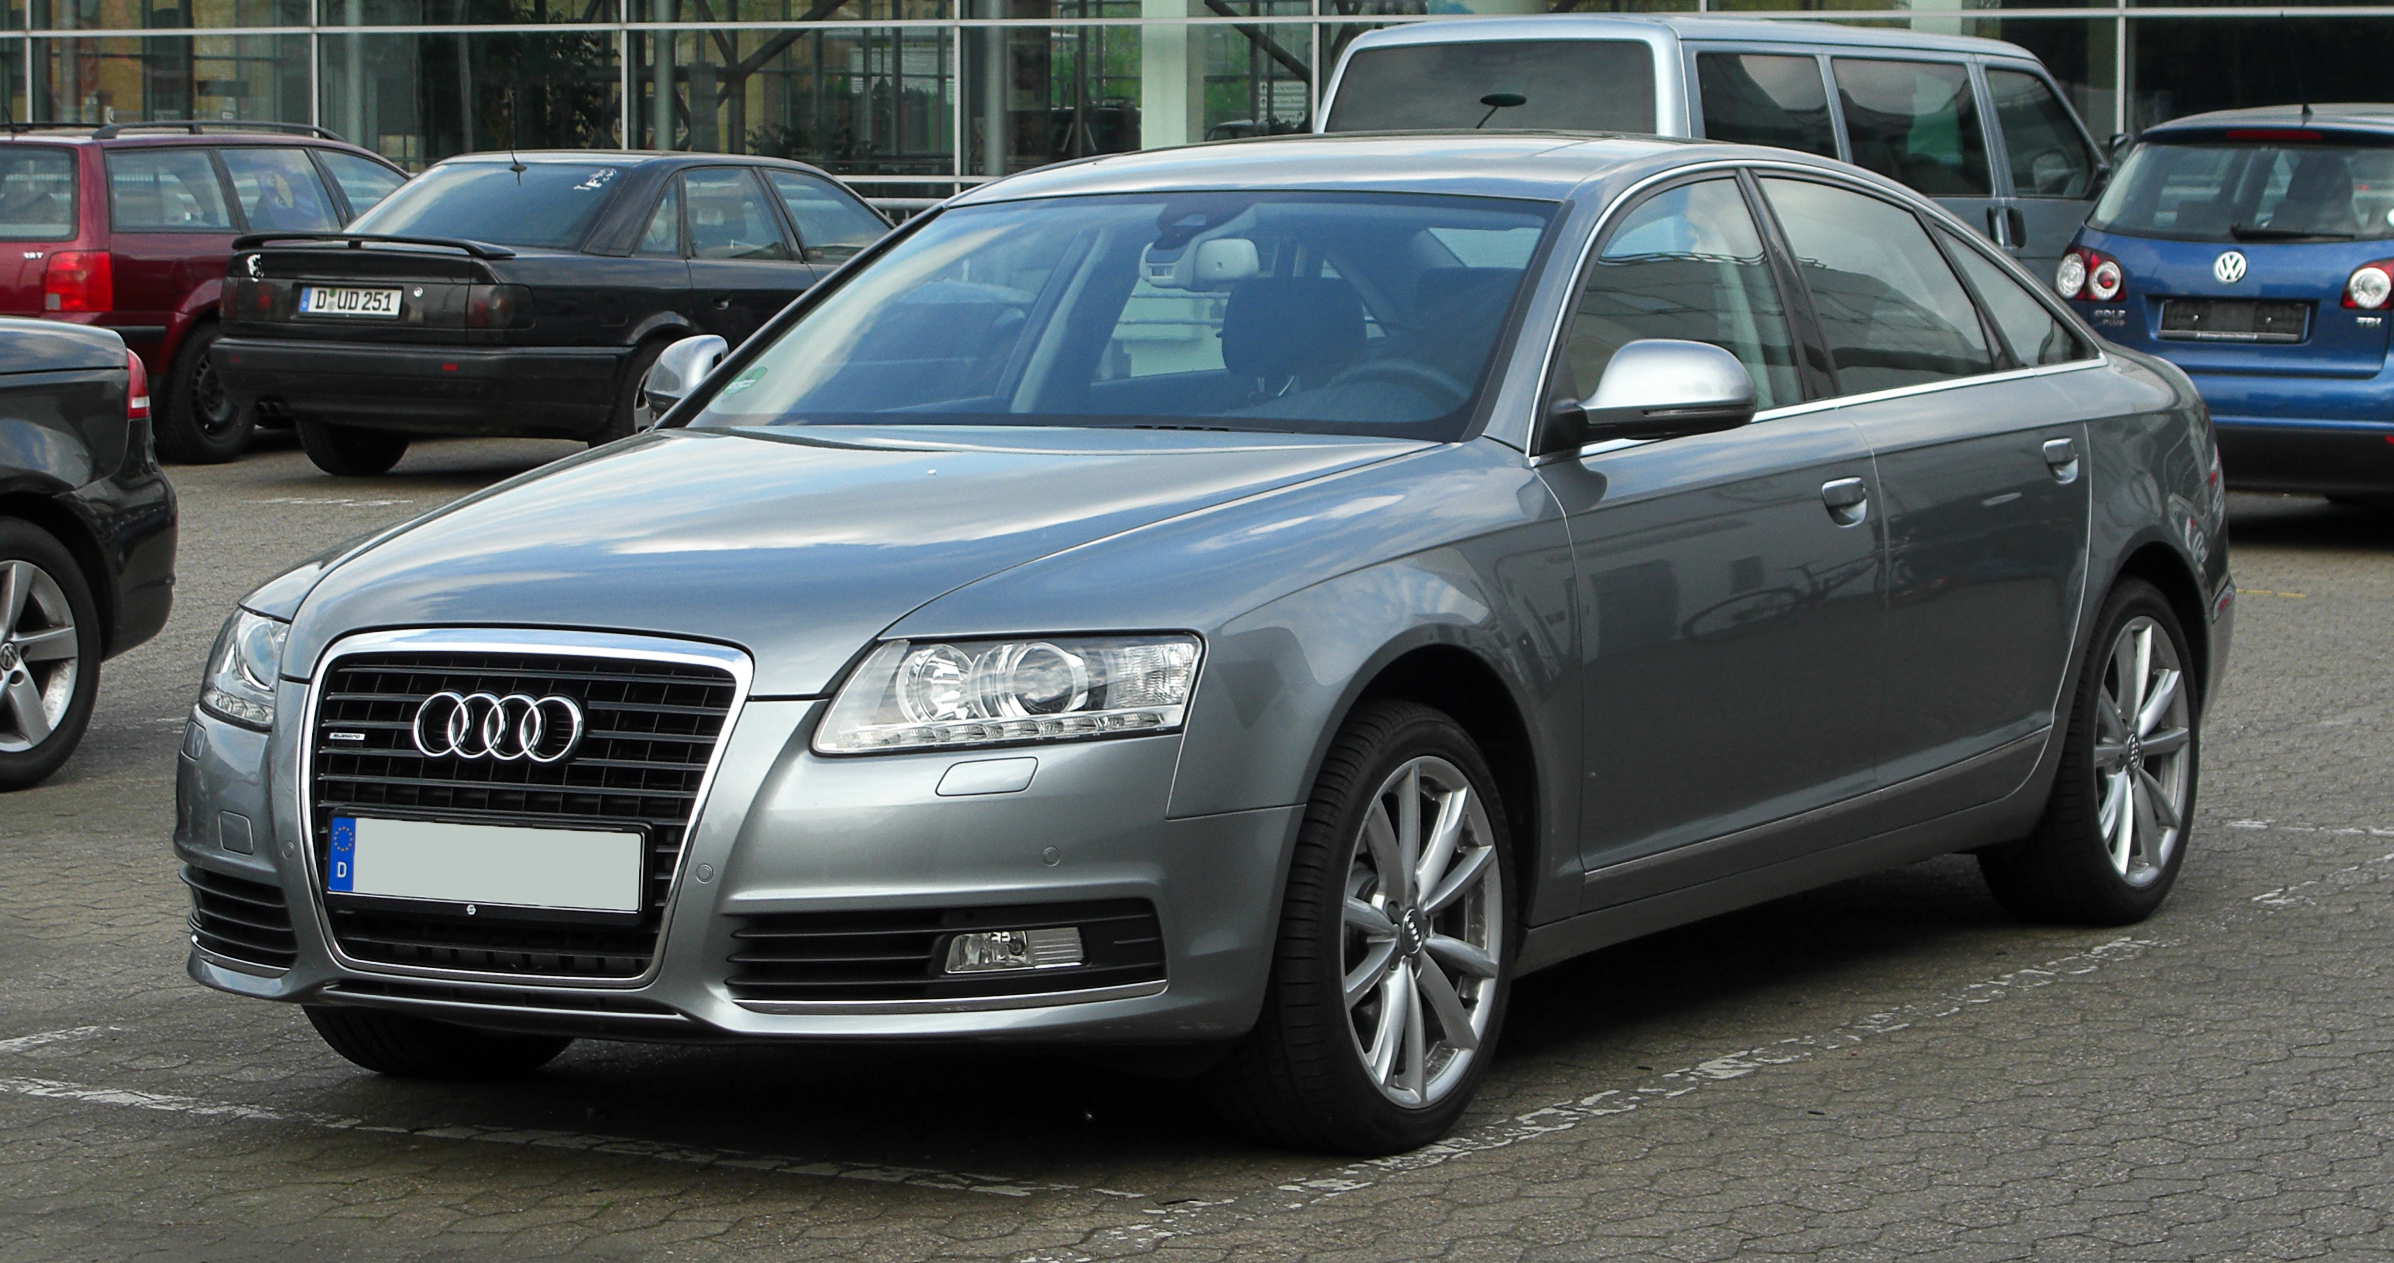 File:Audi A6 (C6, Facelift) – Frontansicht, 16. April 2011 ...